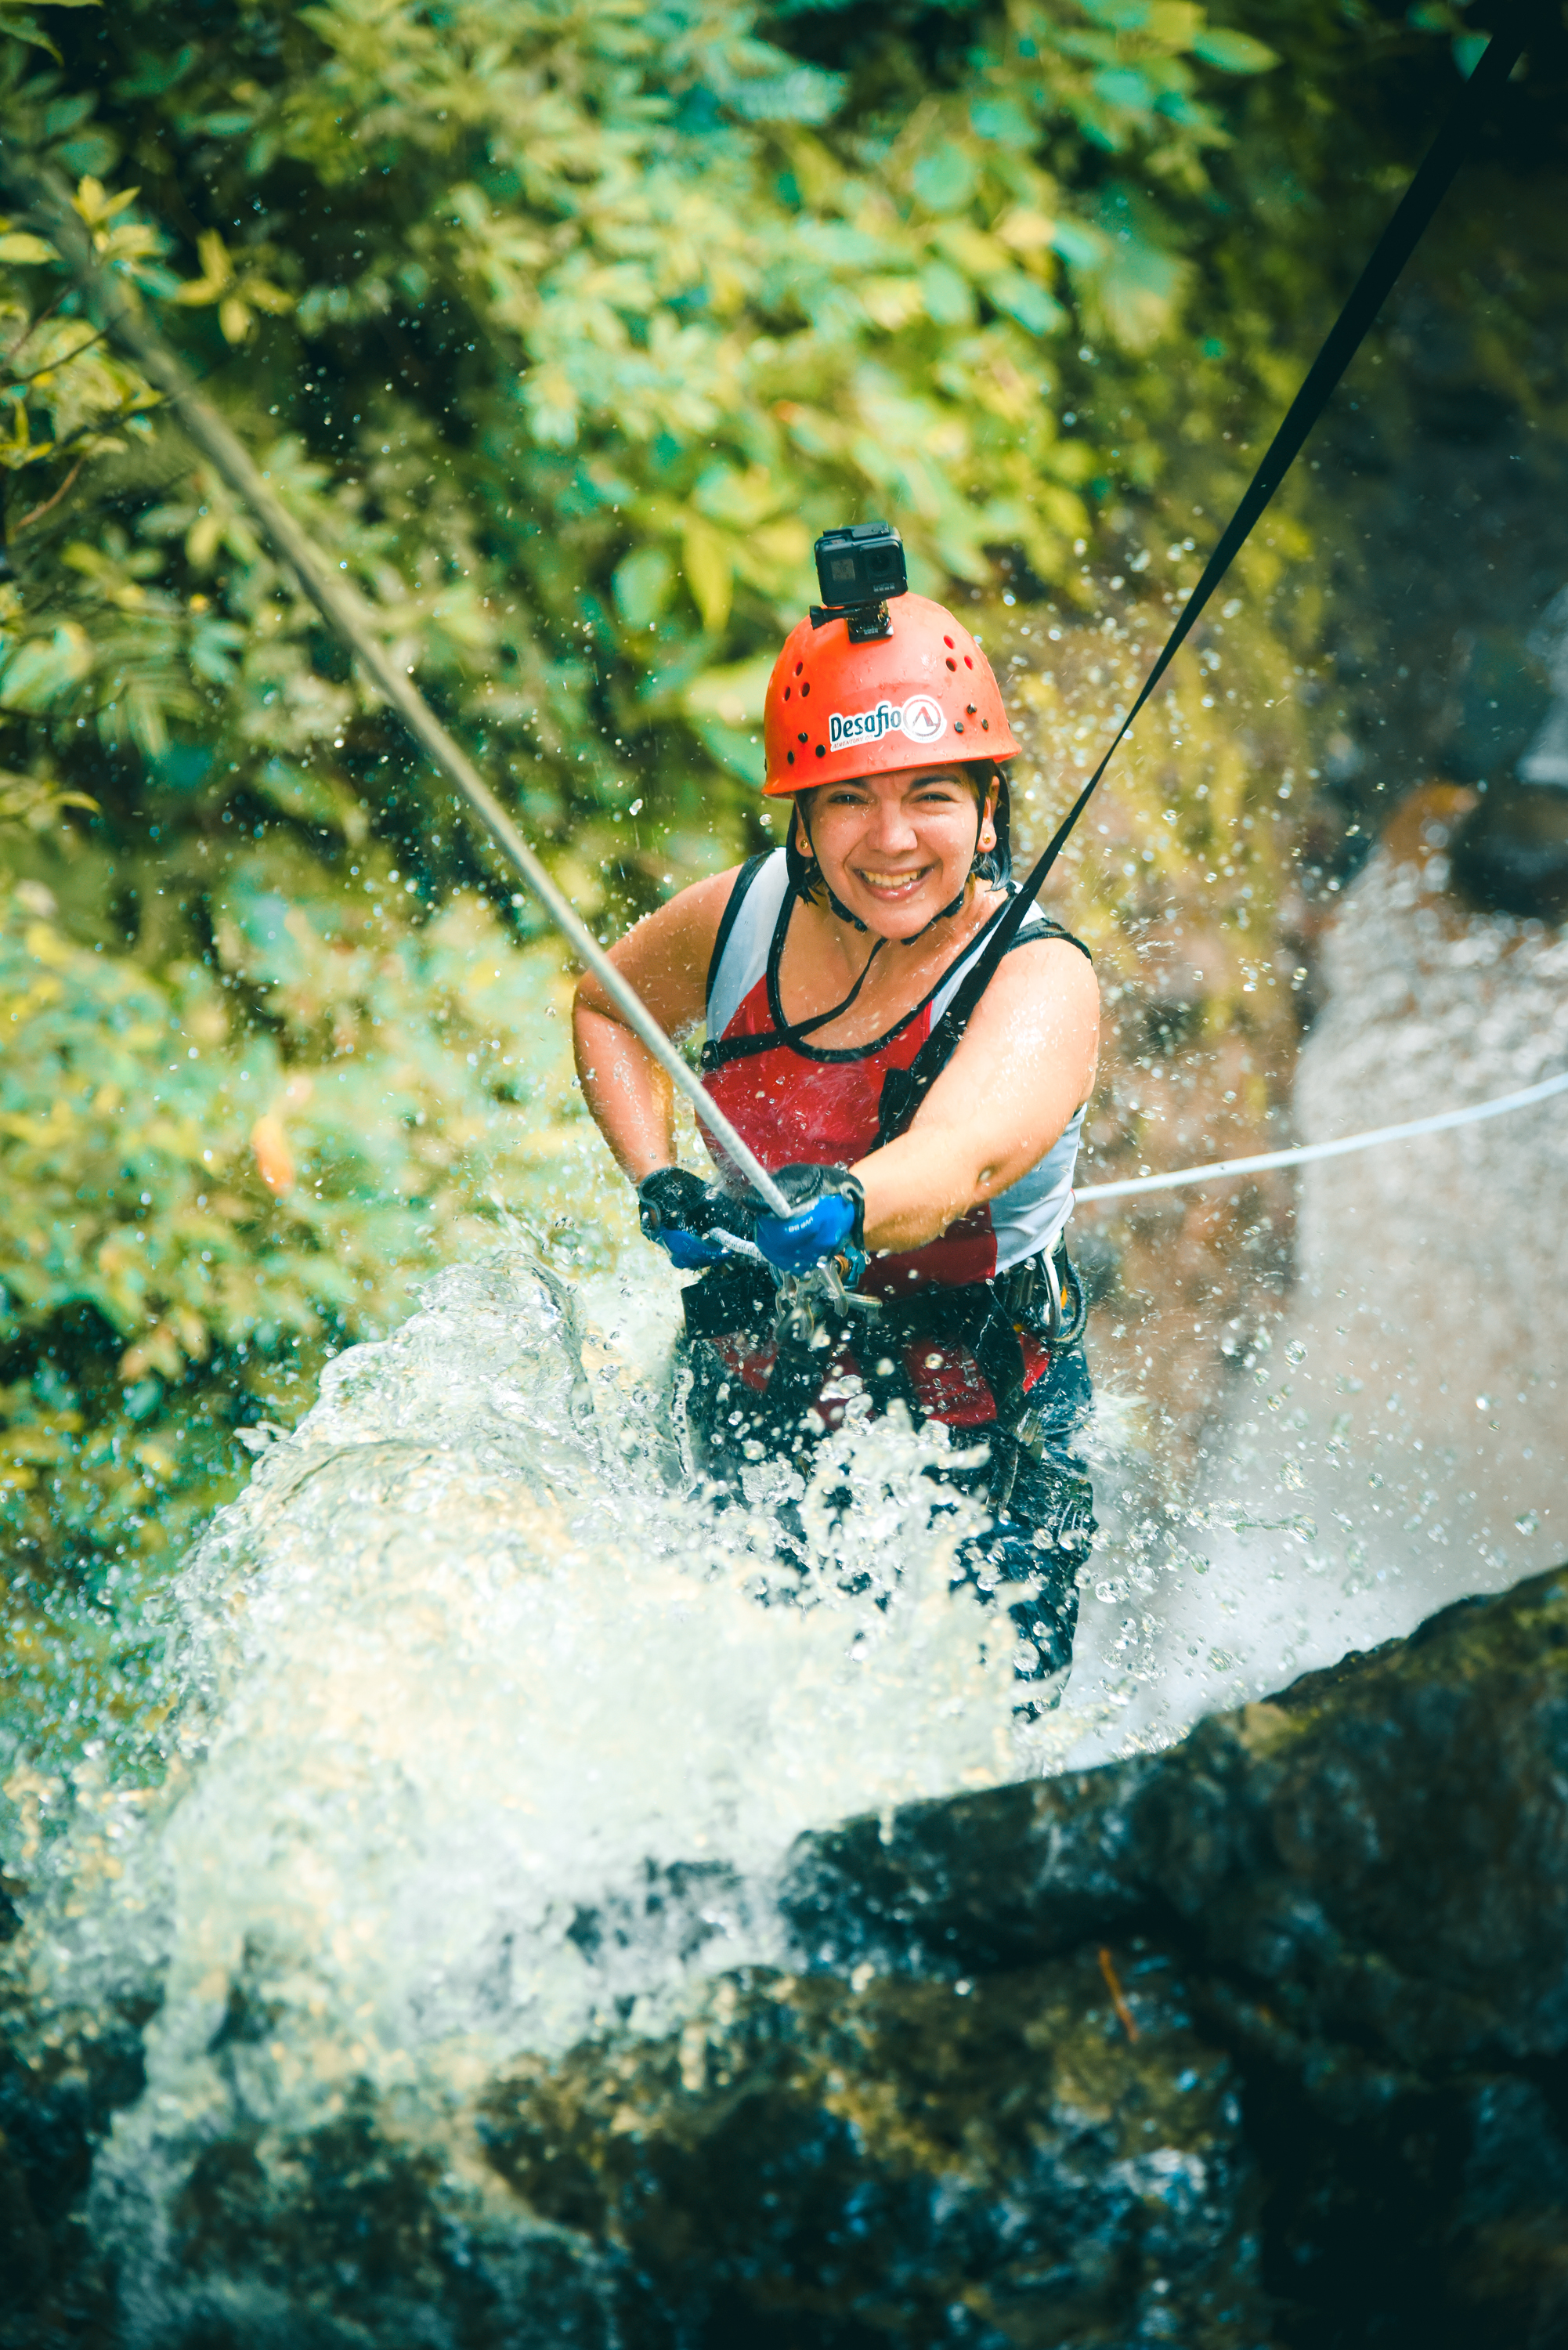 Get wet and wild in the Lost Canyon with Desafio Adventure Company.